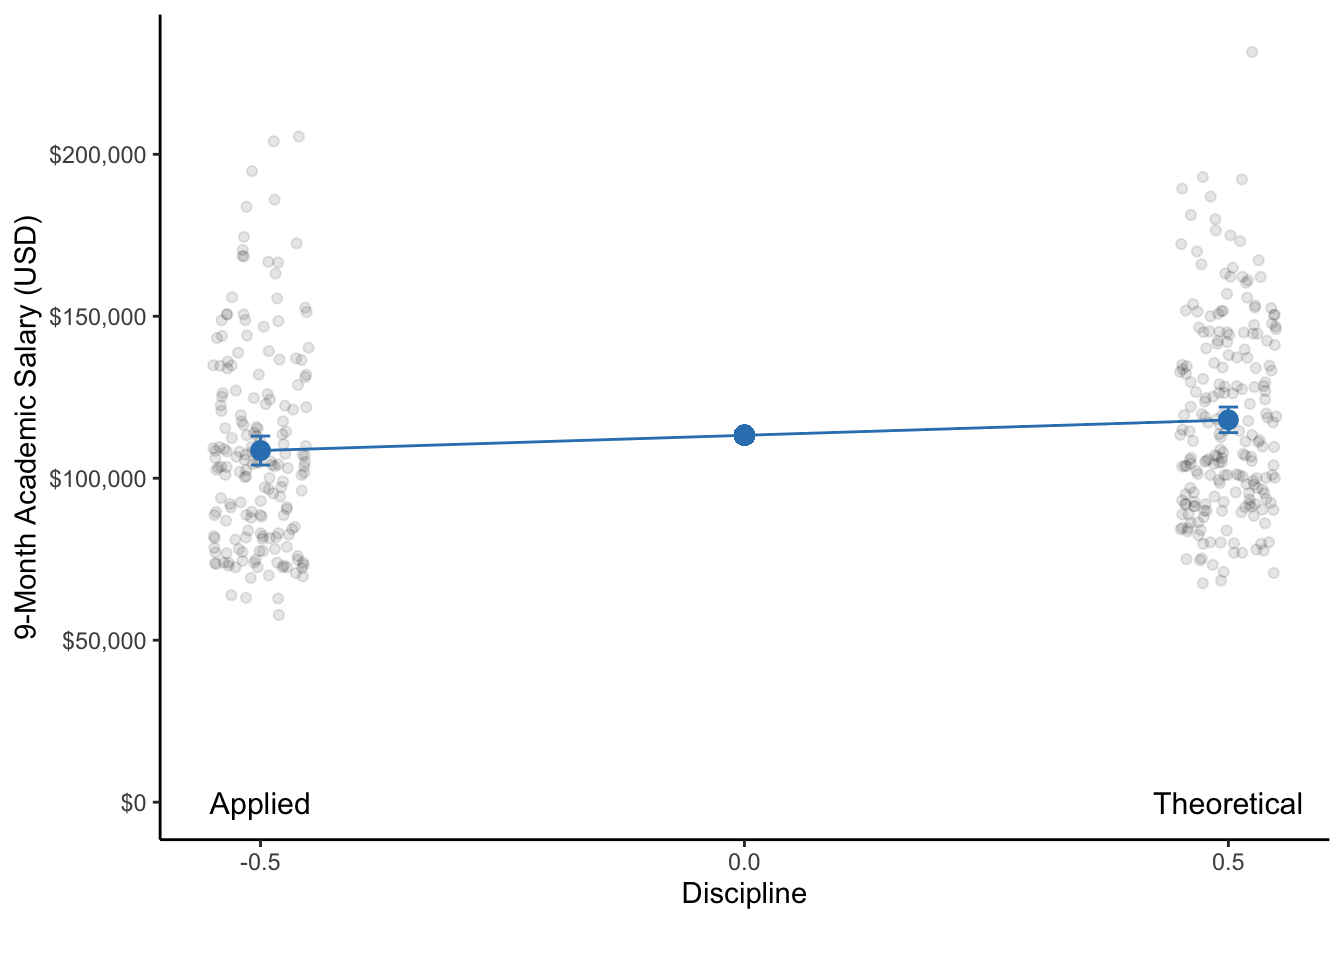 A dot plot of the 9-month academic salaries of professors that are in applied compared to theoretical disciplines. With respect to each discipline, the dot represents the mean salary and the bars represent the 95% CI.  Note: The data points of each group are actually only on a single line on the x-axis. They are only jittered (dispersed) for easier visualization of all data points.